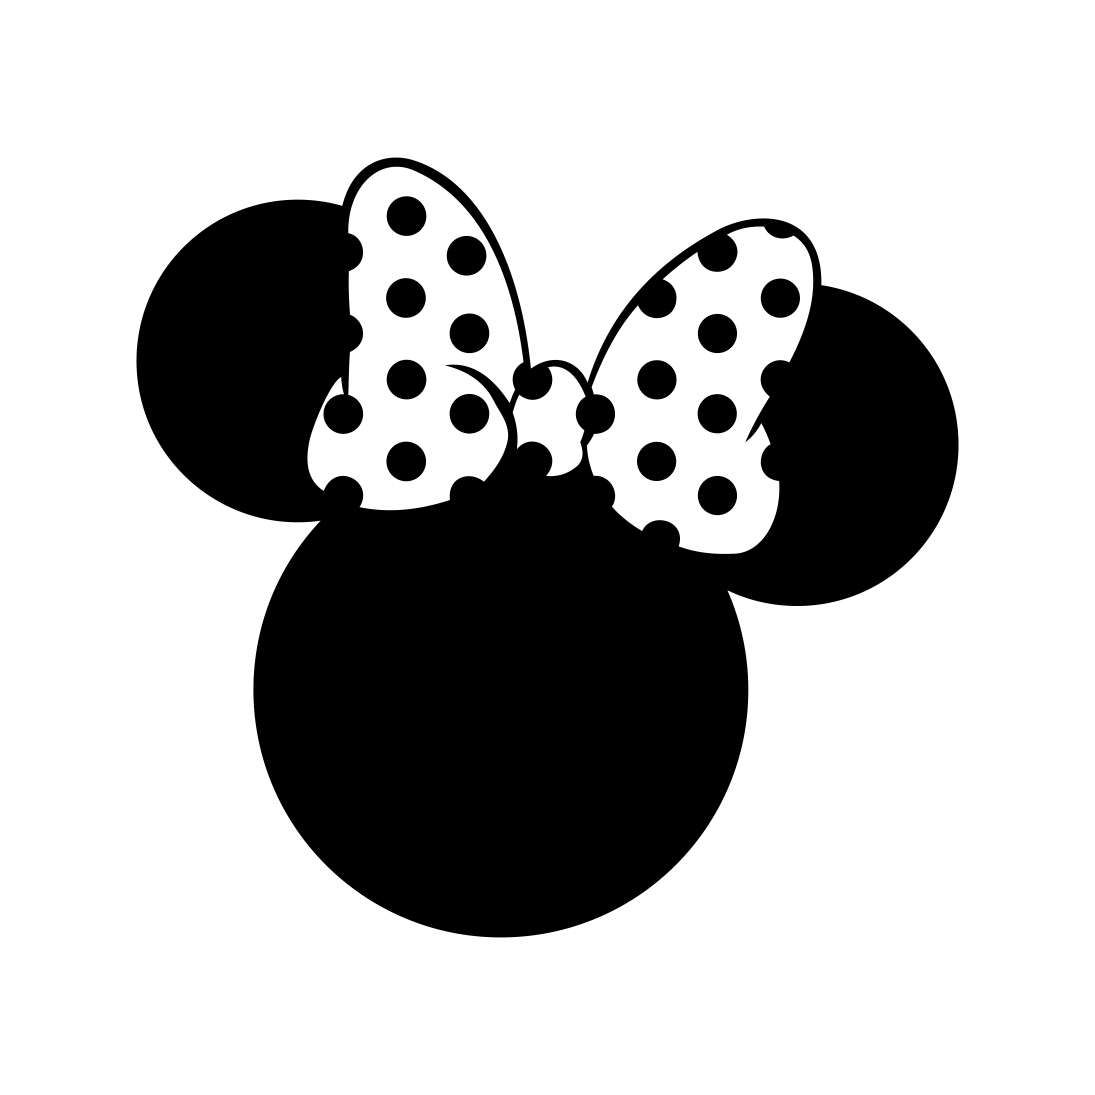 Minnie Mouse Head Polka Dot Bow Graphics Svg Dxf Eps Png Cdr Ai Pdf Vector Art Clipart Instant Download Digita Disney Silhouettes Disney Logo Disney Silhouette